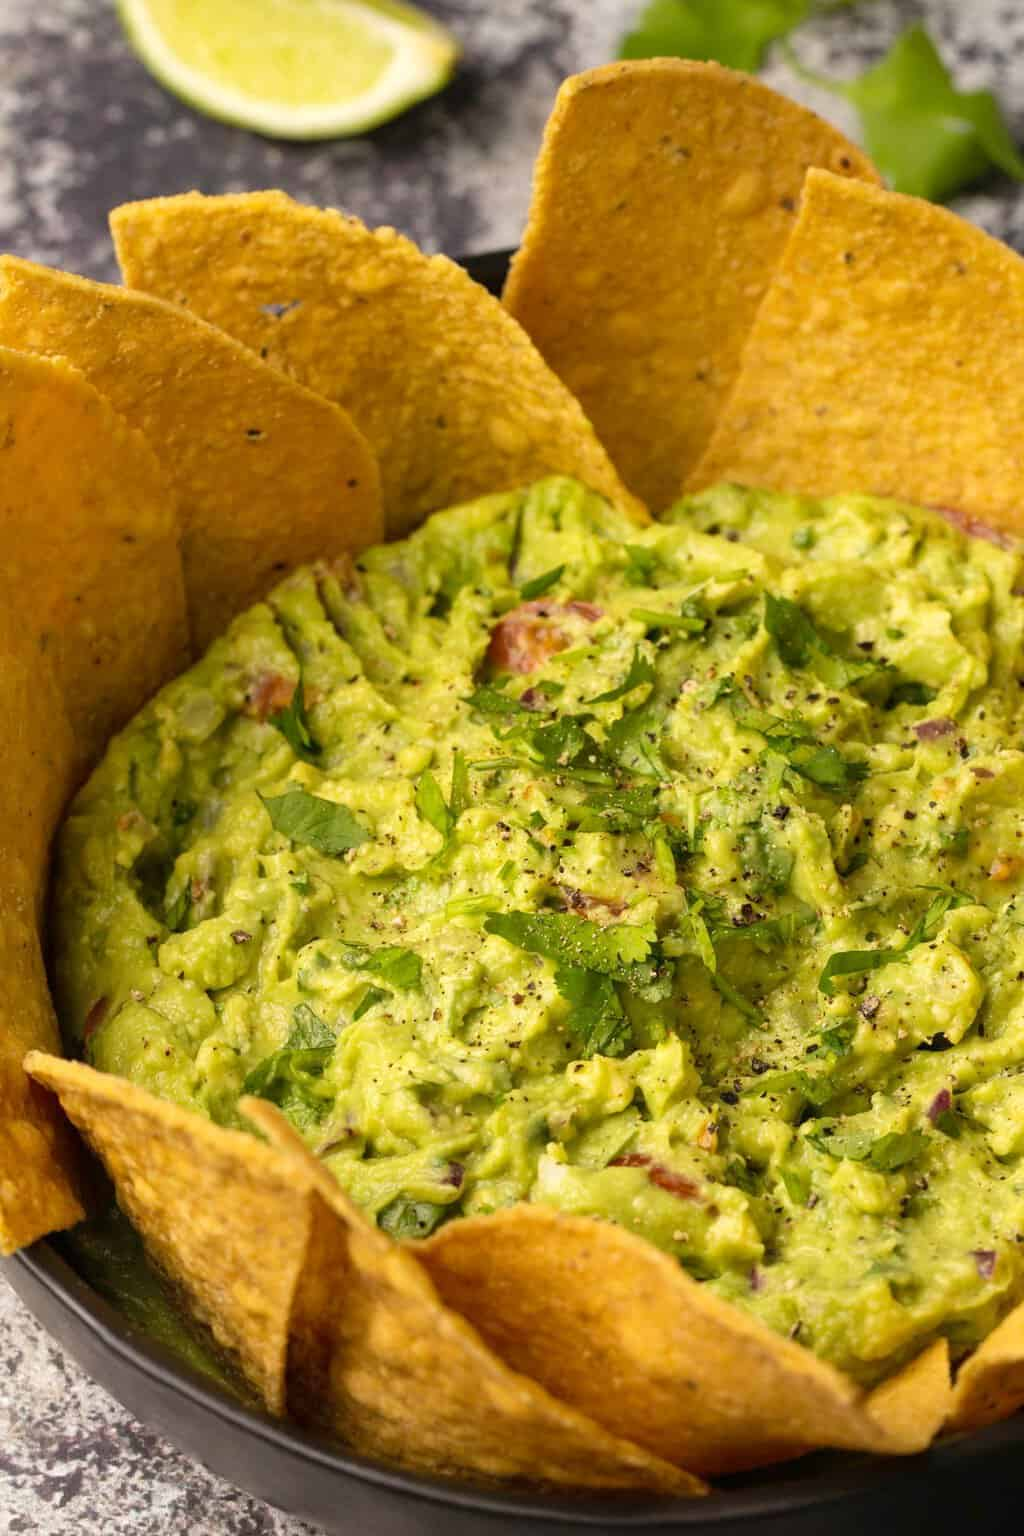 Vegan guacamole with tortilla chips in a black bowl.